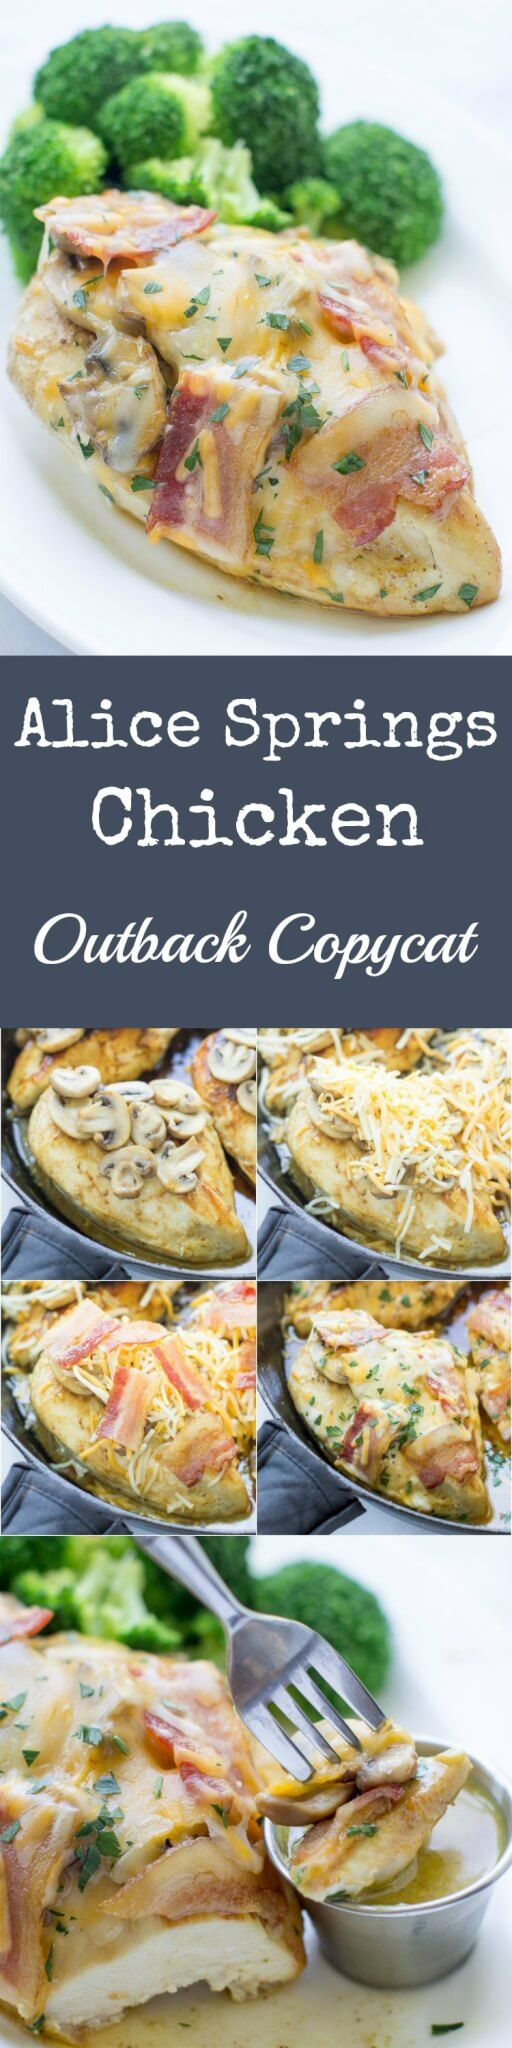 This copycat Alice Springs Chicken from Outback Steakhouse combines honey mustard sauce with buttery mushrooms and bacon, all smothered in way too much cheese. AKA The Most Delicious Way To Eat Chicken Known to Man.